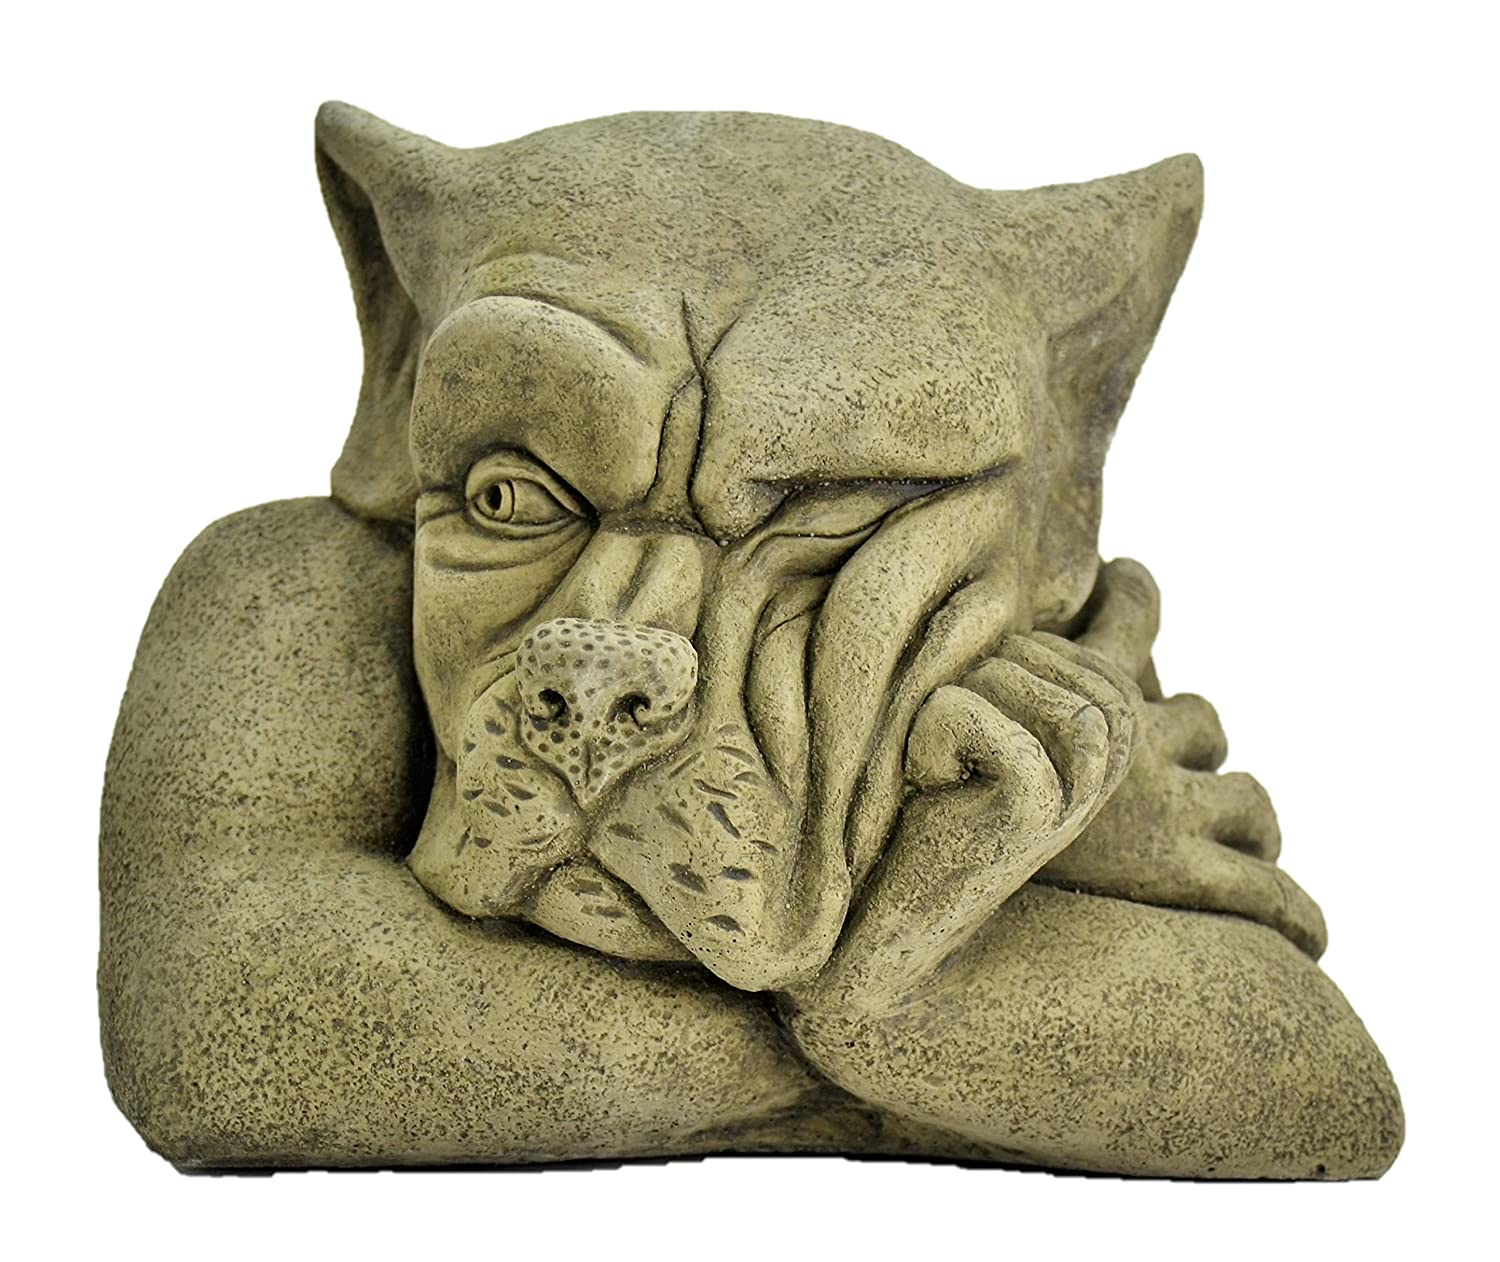 Bert-Garden Ornament-Gargoyle-Sculpture Stone Statue-Home Patio-Decorative Gift DSL